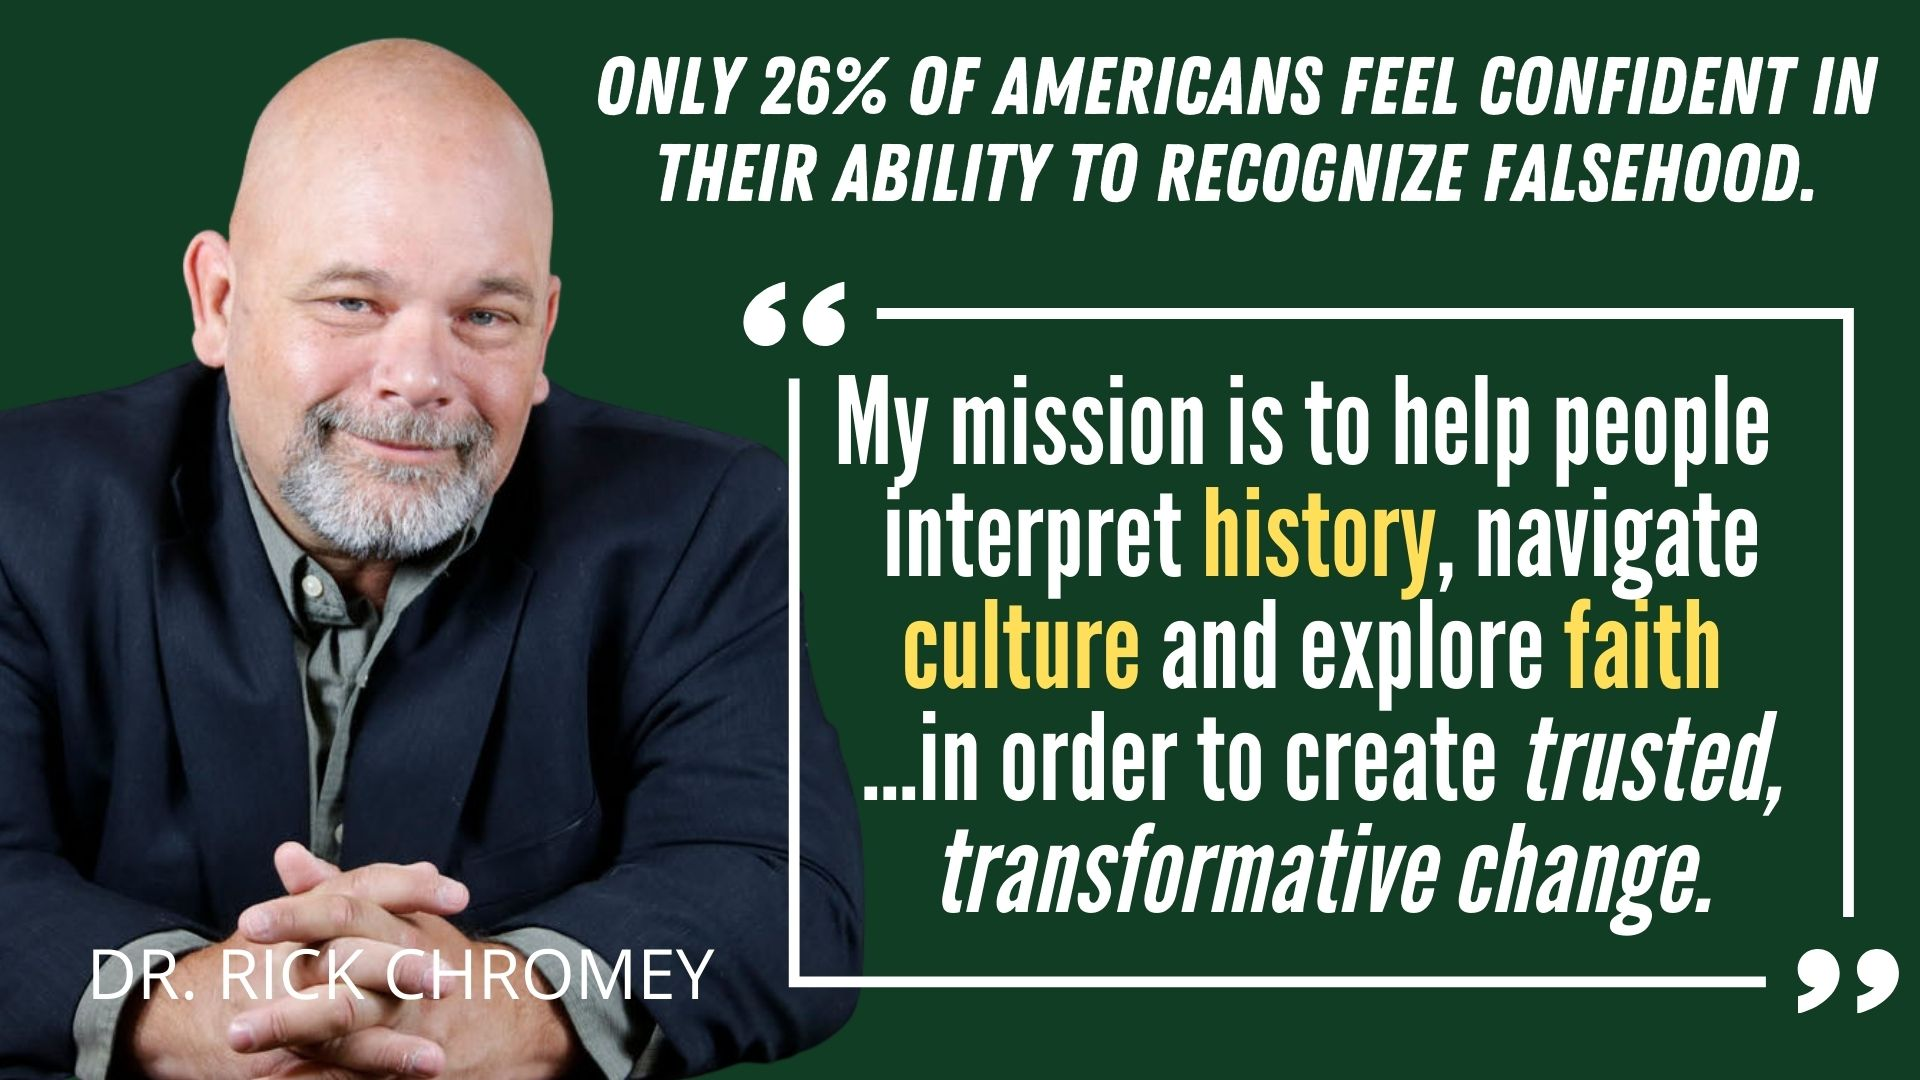 My mission is to help people to interpret history, navigate culture and understand faith for transformative change.